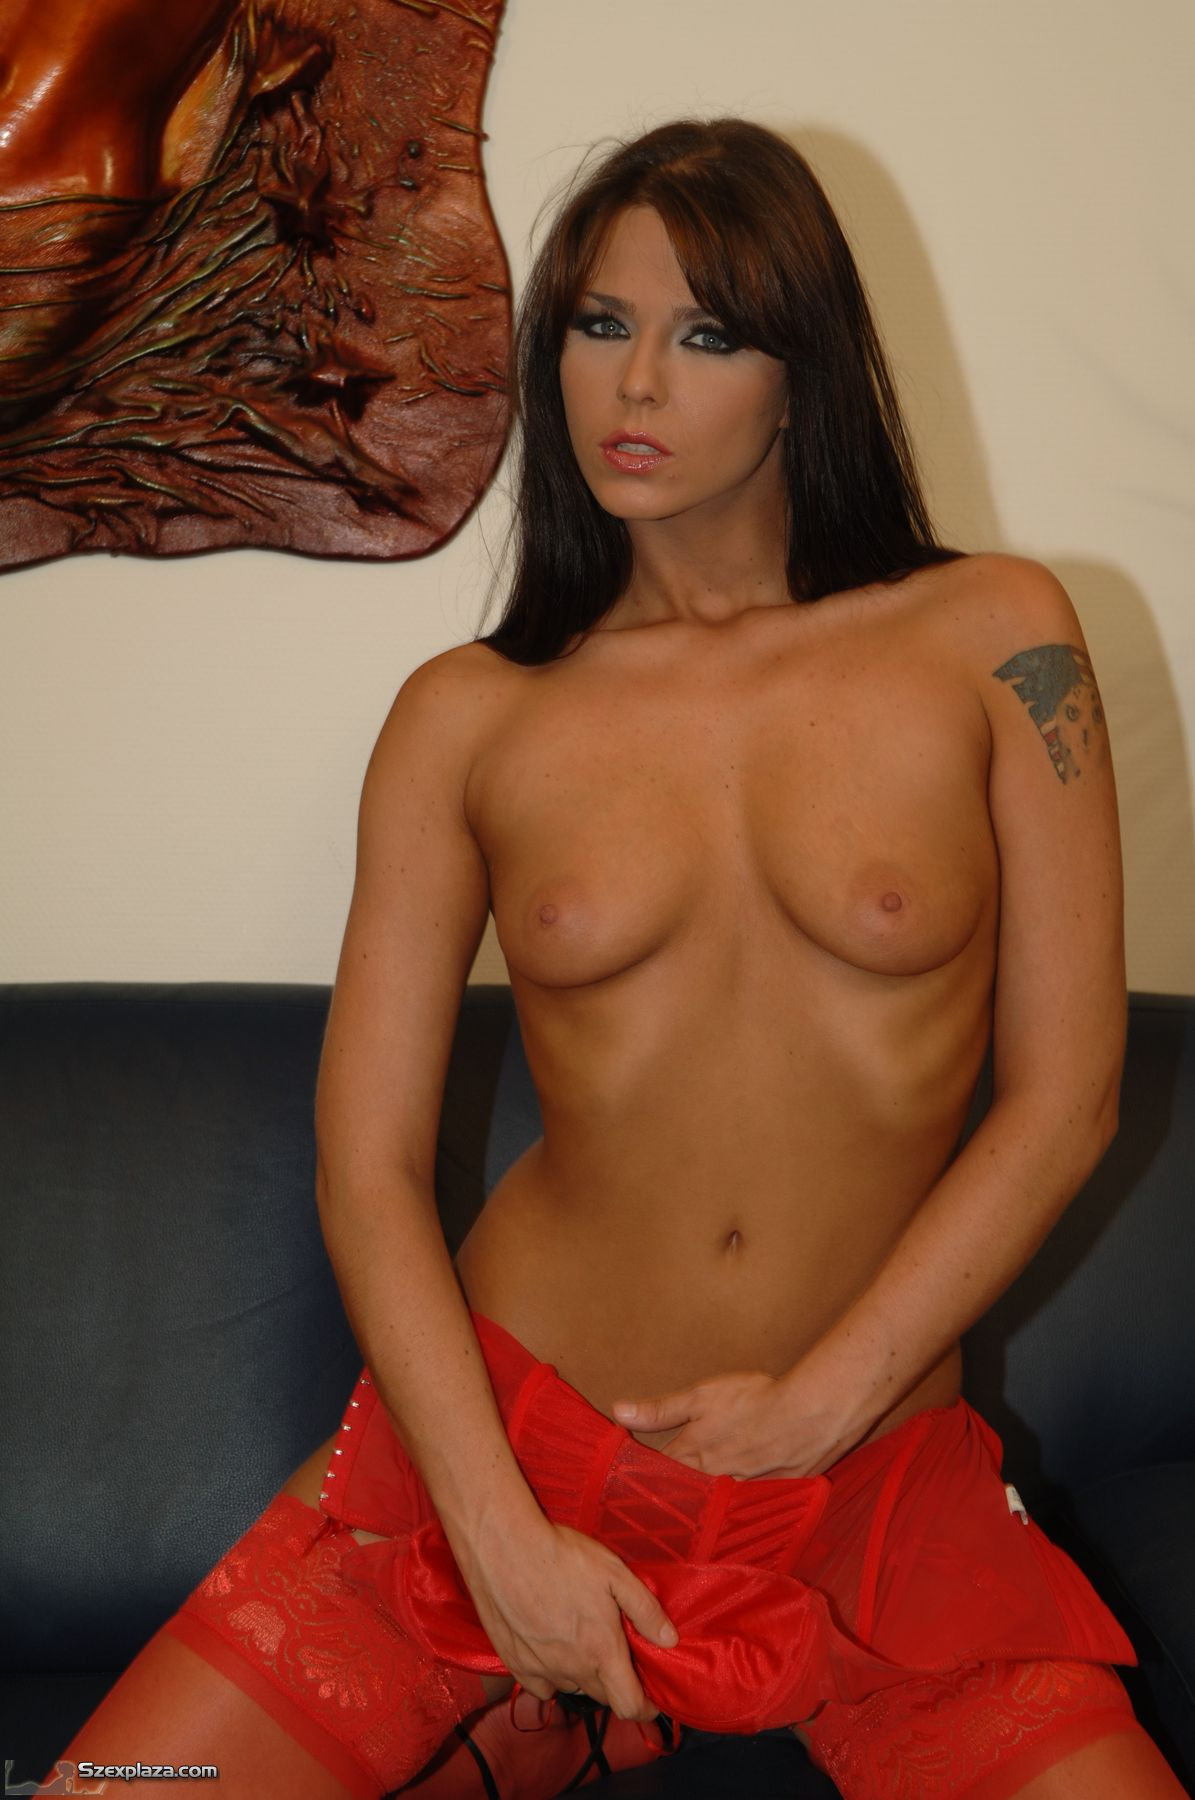 825339868_tduid10147_Simony_Diamond021_123_726lo.JPG